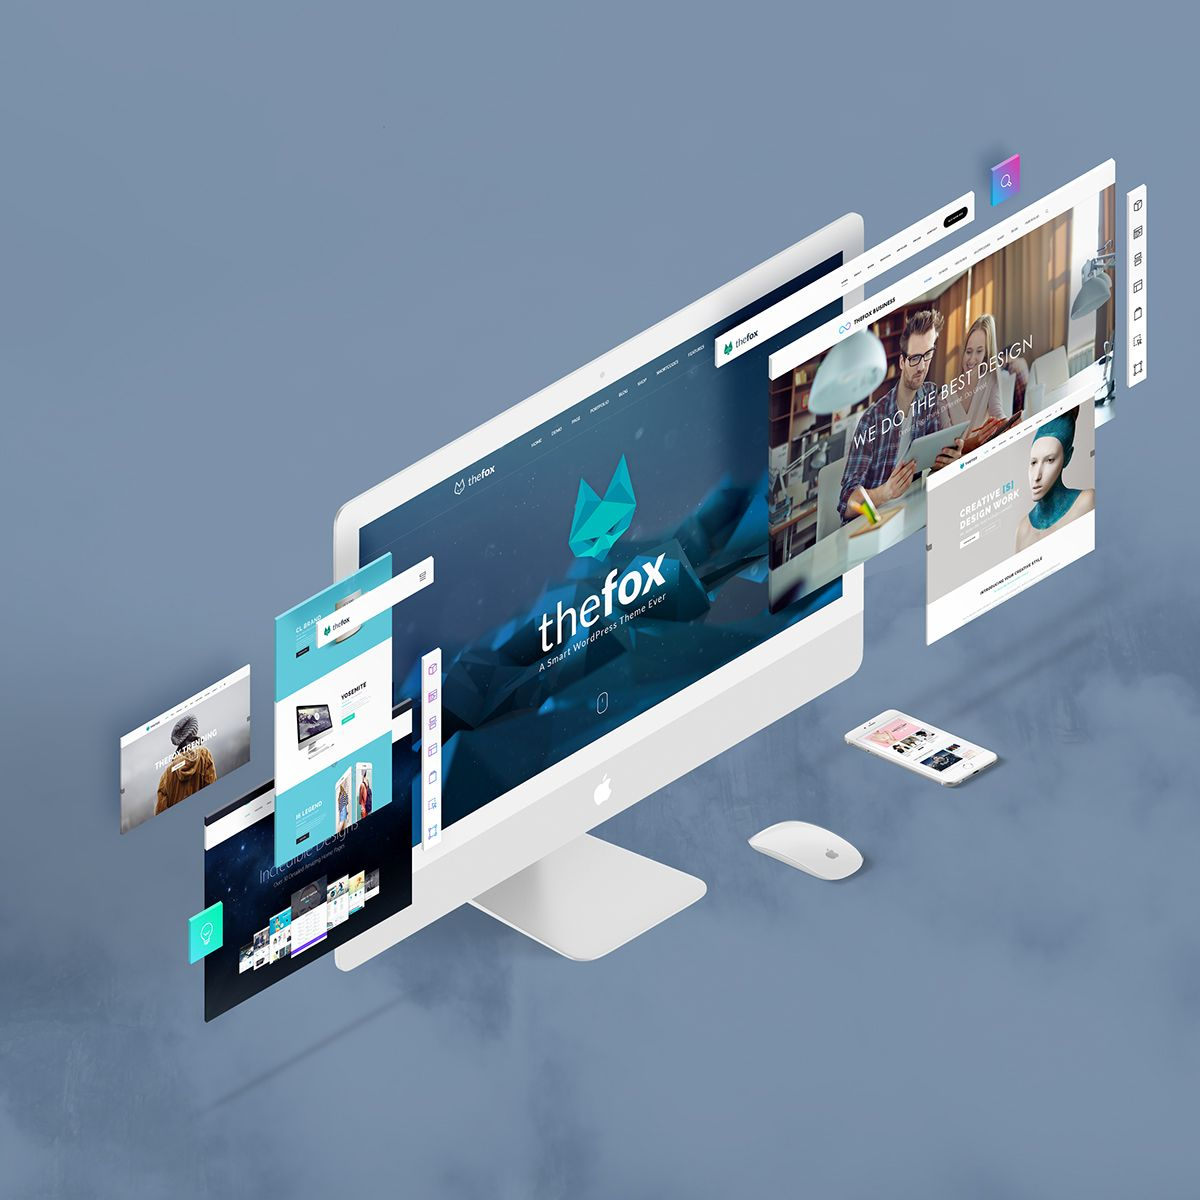 The Screens Is The Perfectly Psd Mockup With The Perspective View To Showcase Psd Mockup Template Mockup Psd Mockup Free Psd